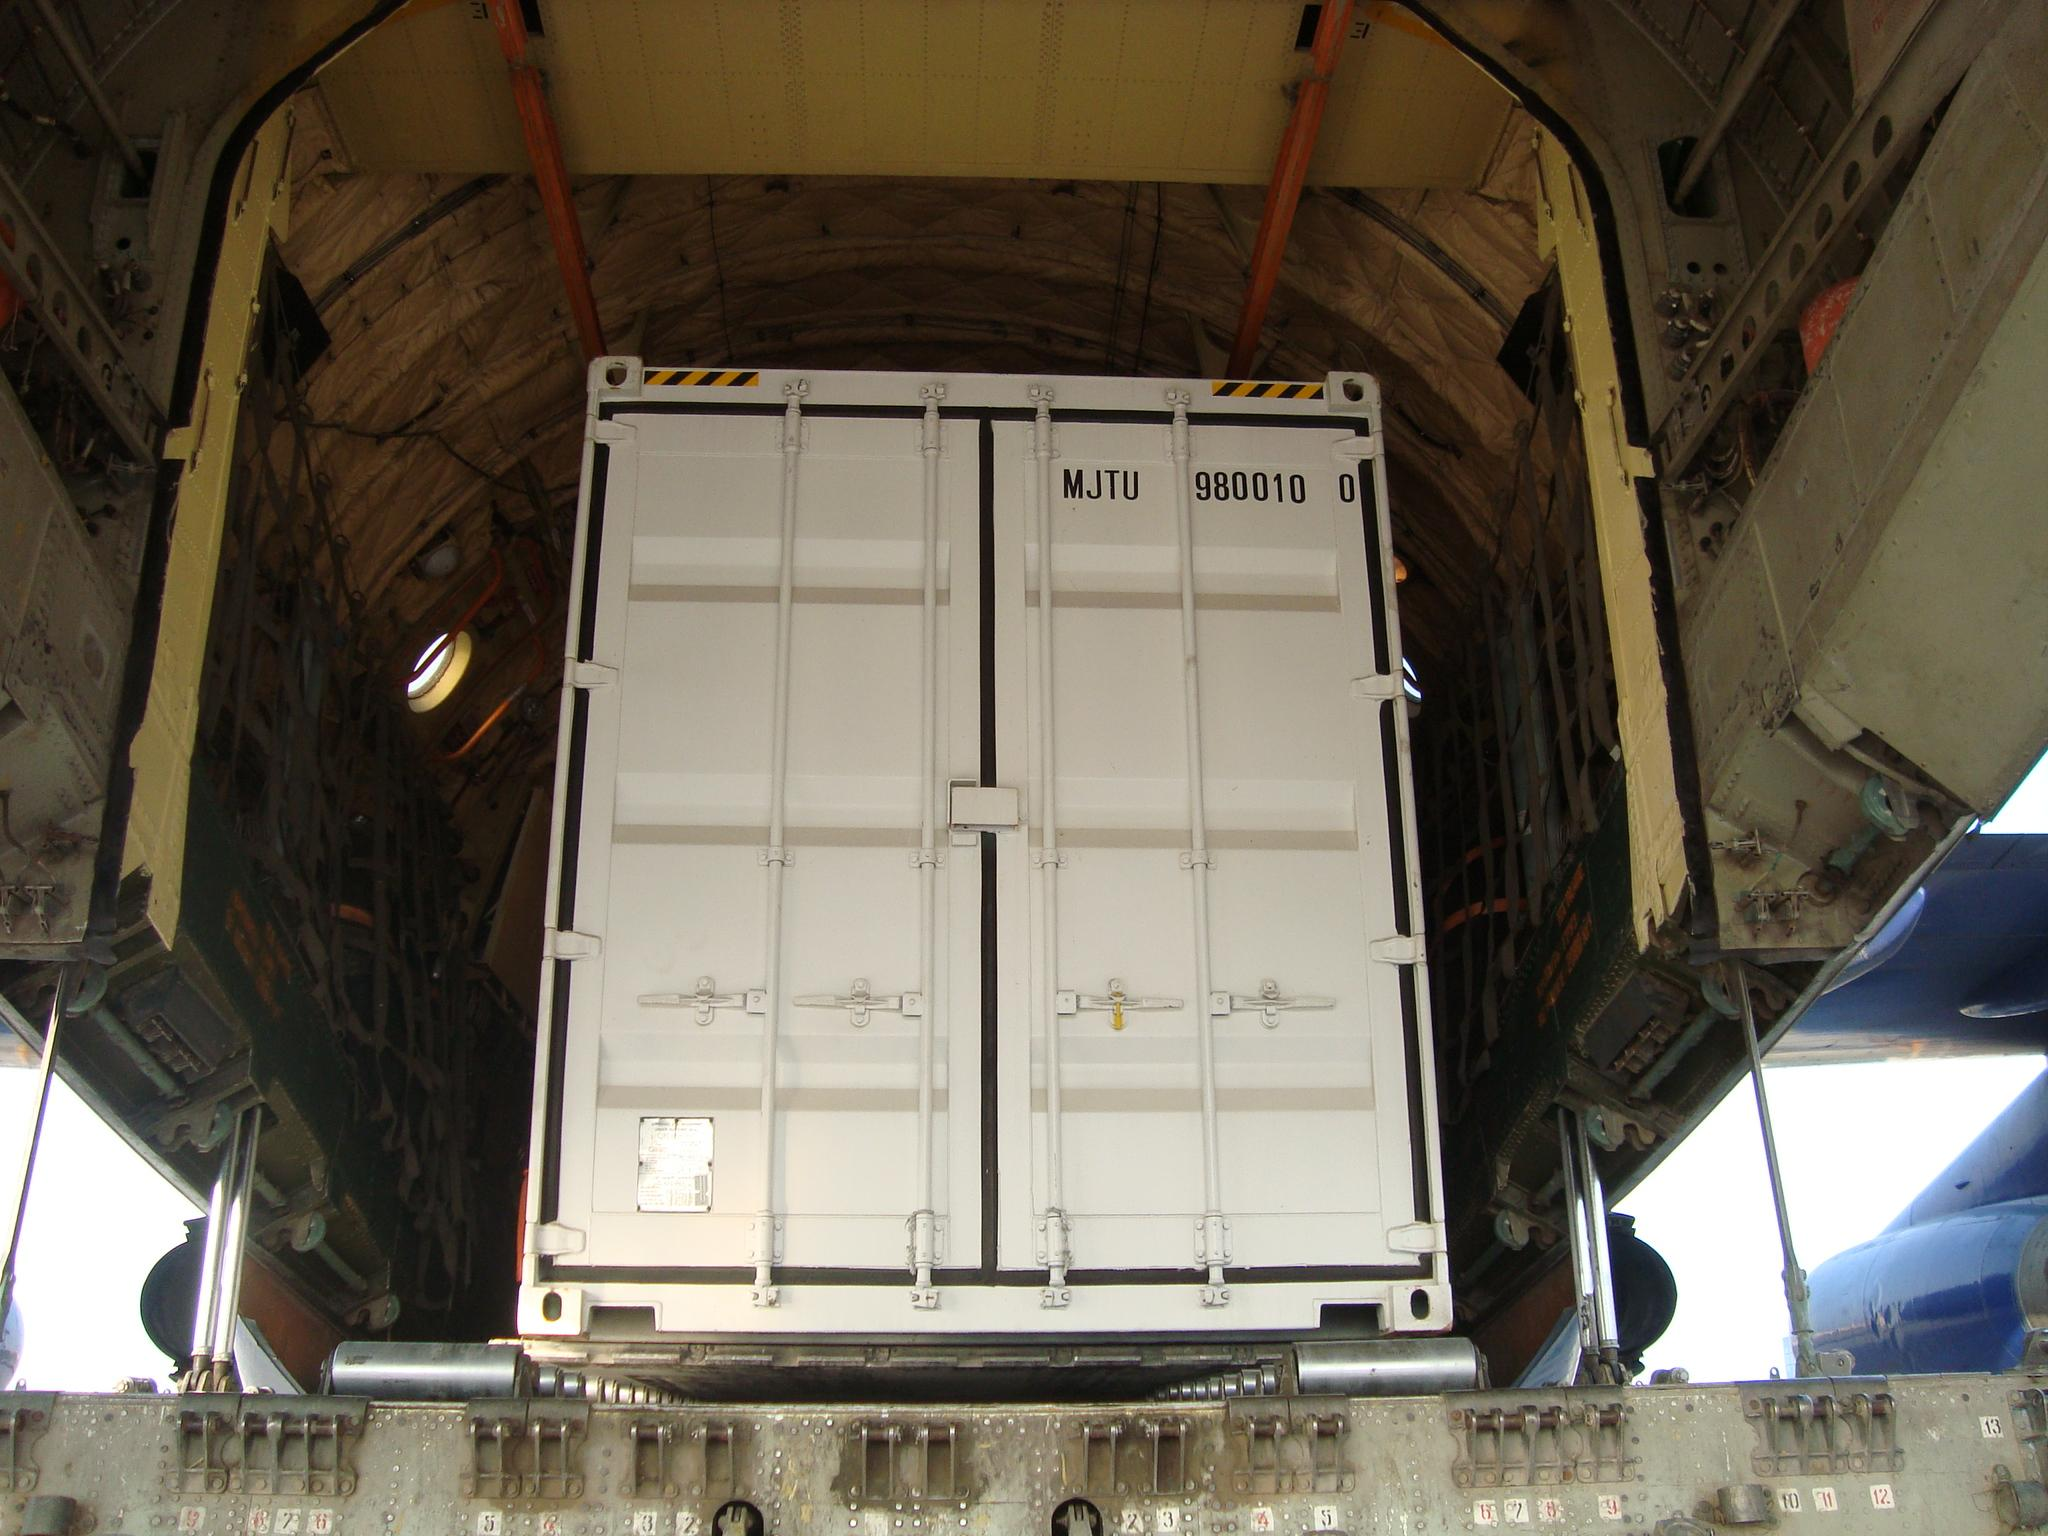 Container on aircraft